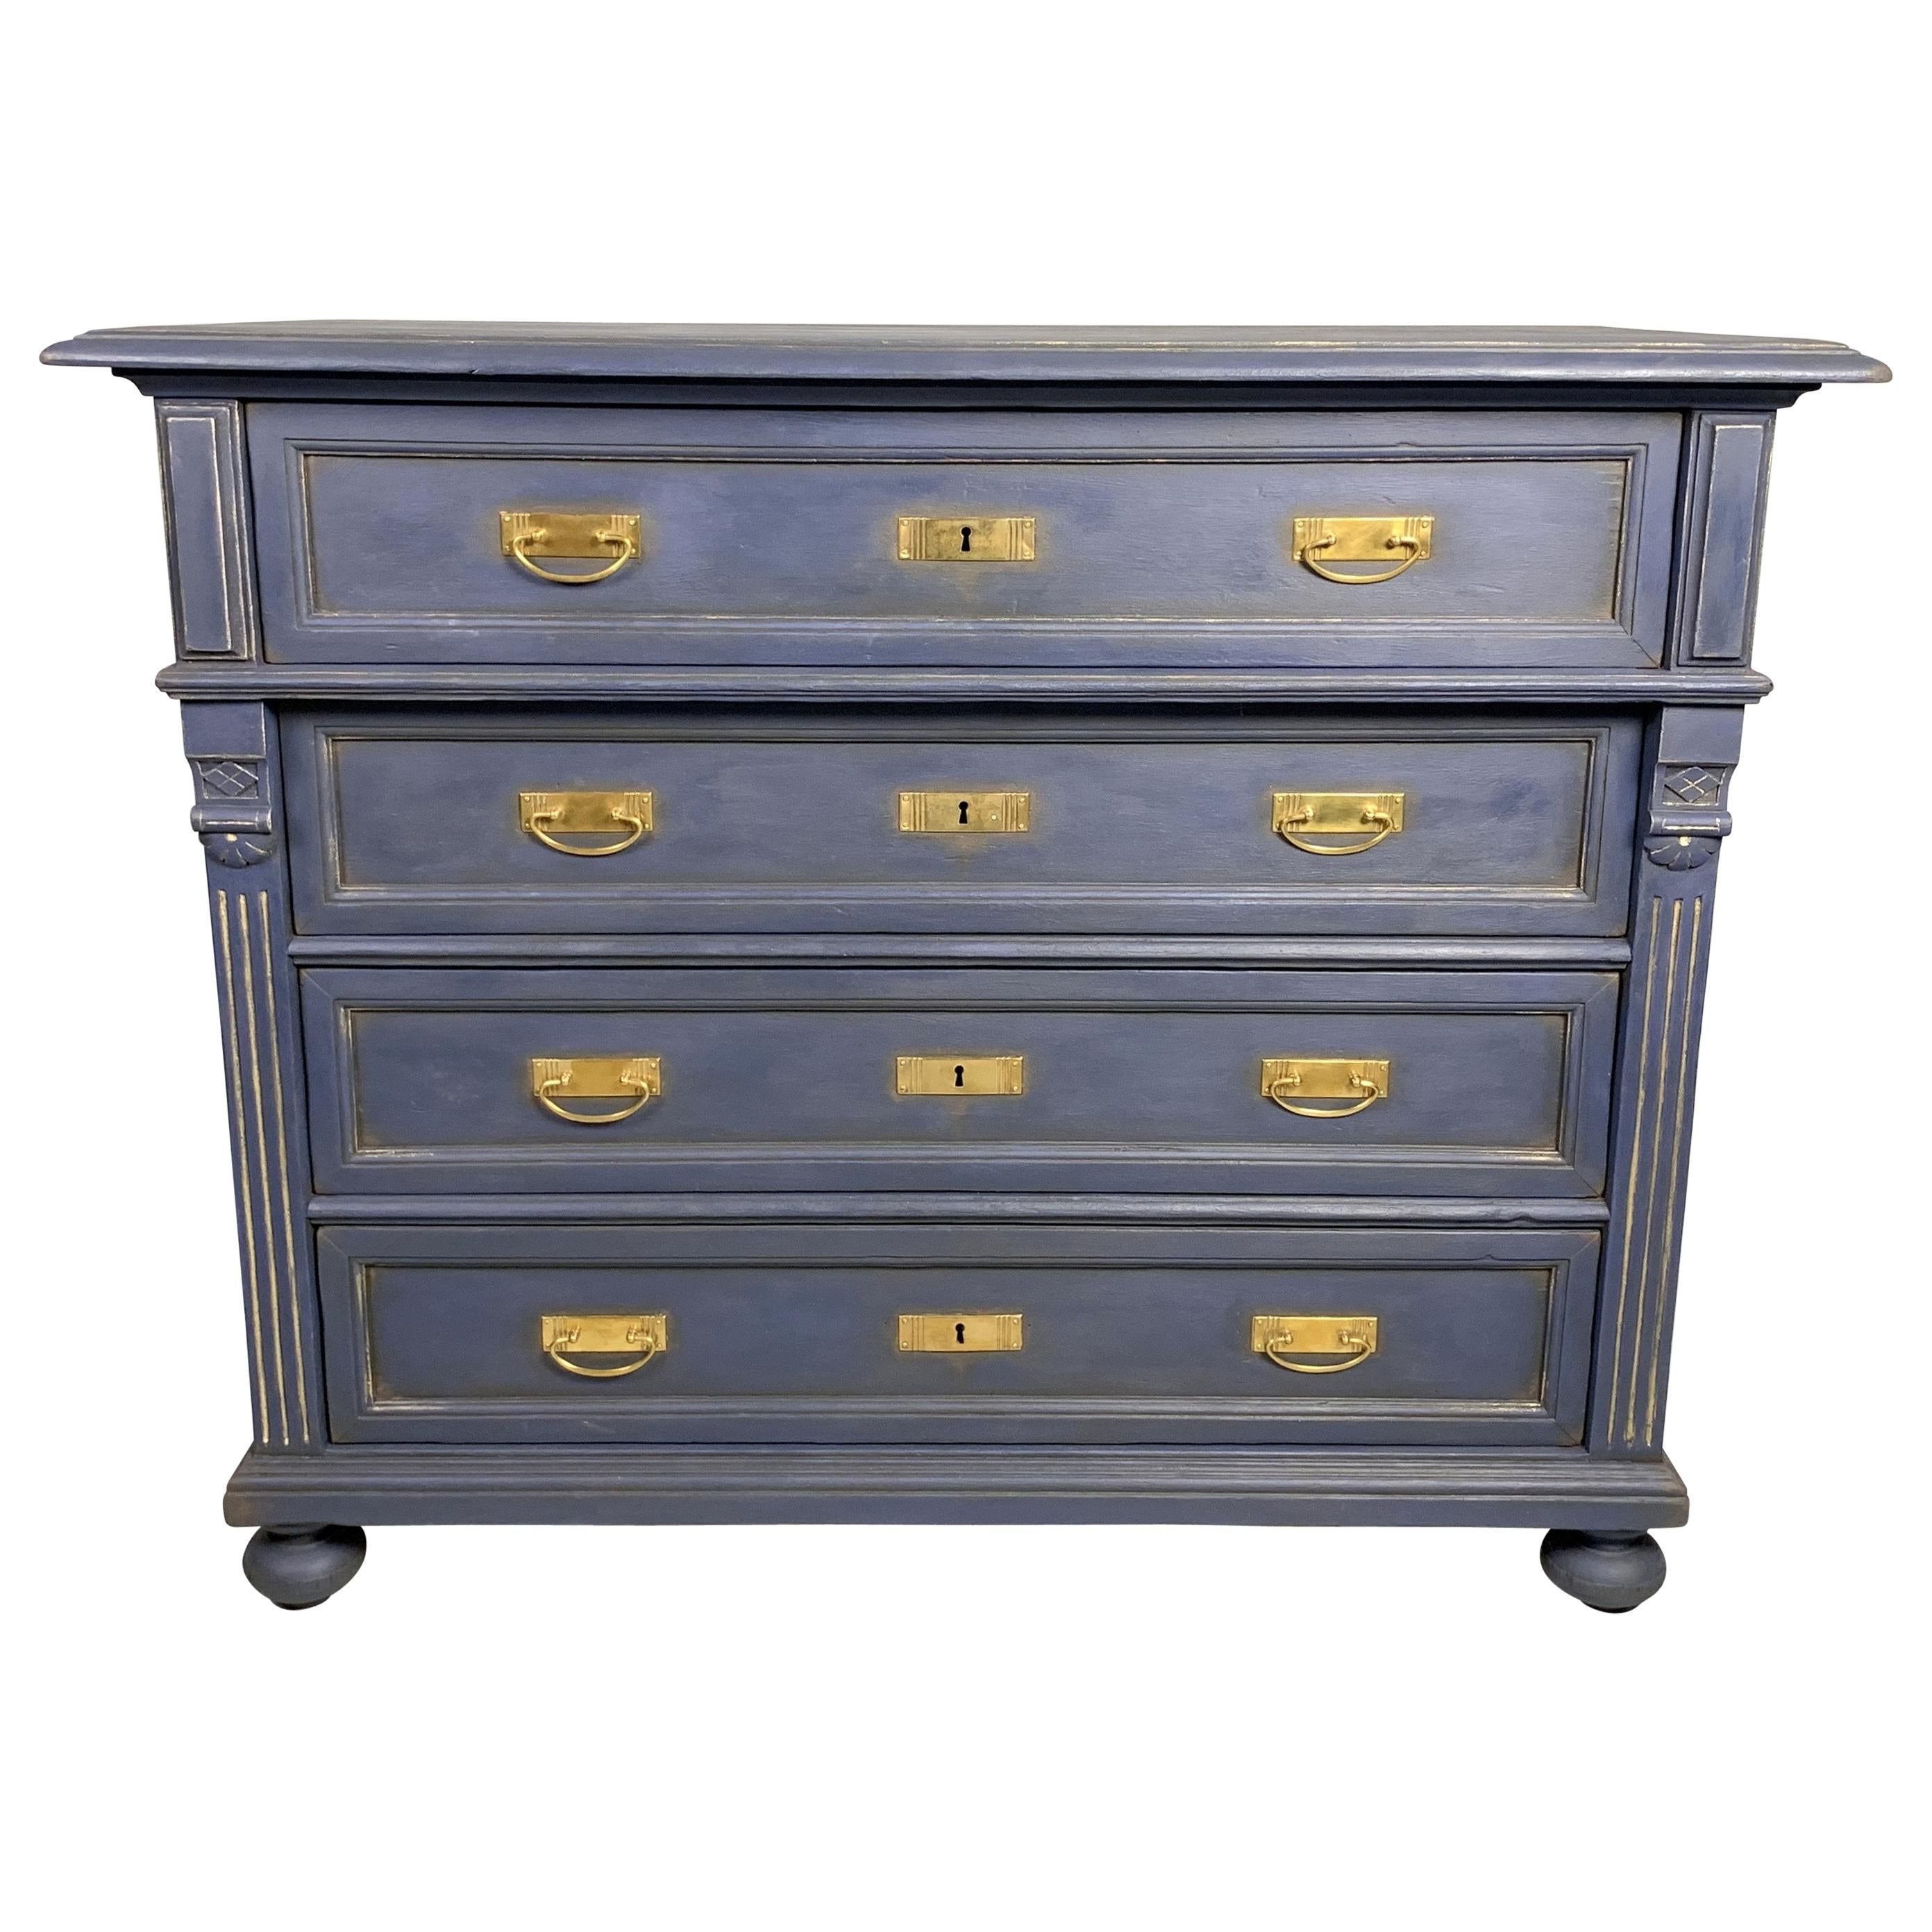 Antique Wooden Hand Painted Chest of Drawers, 1900s